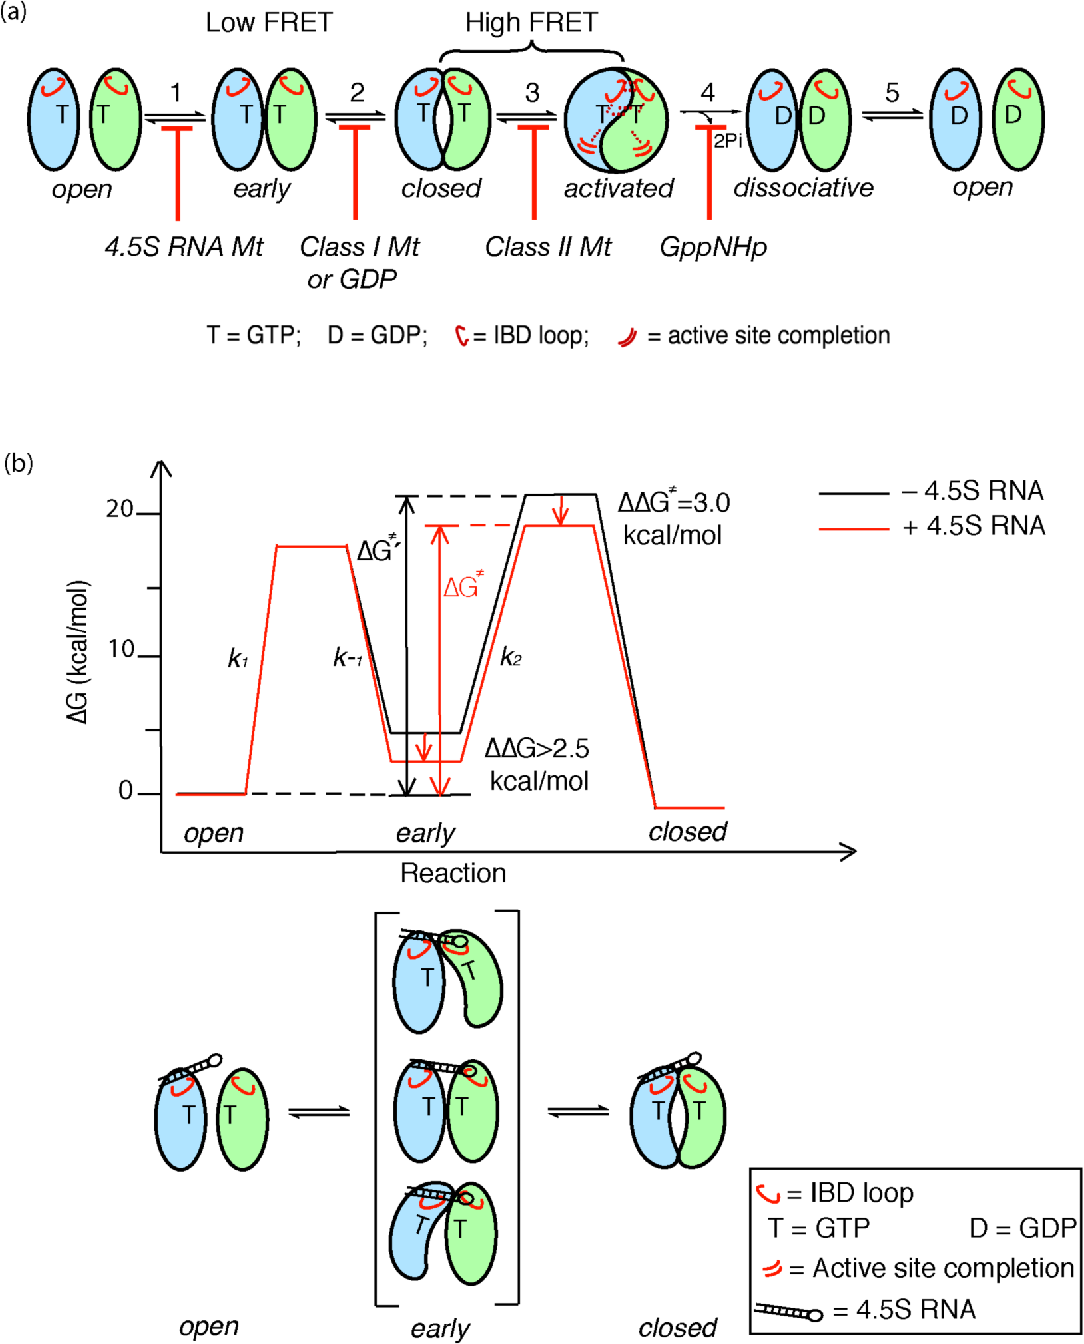 Figure 8. Multiple conformational changes during SRP-SR complex formation and activation